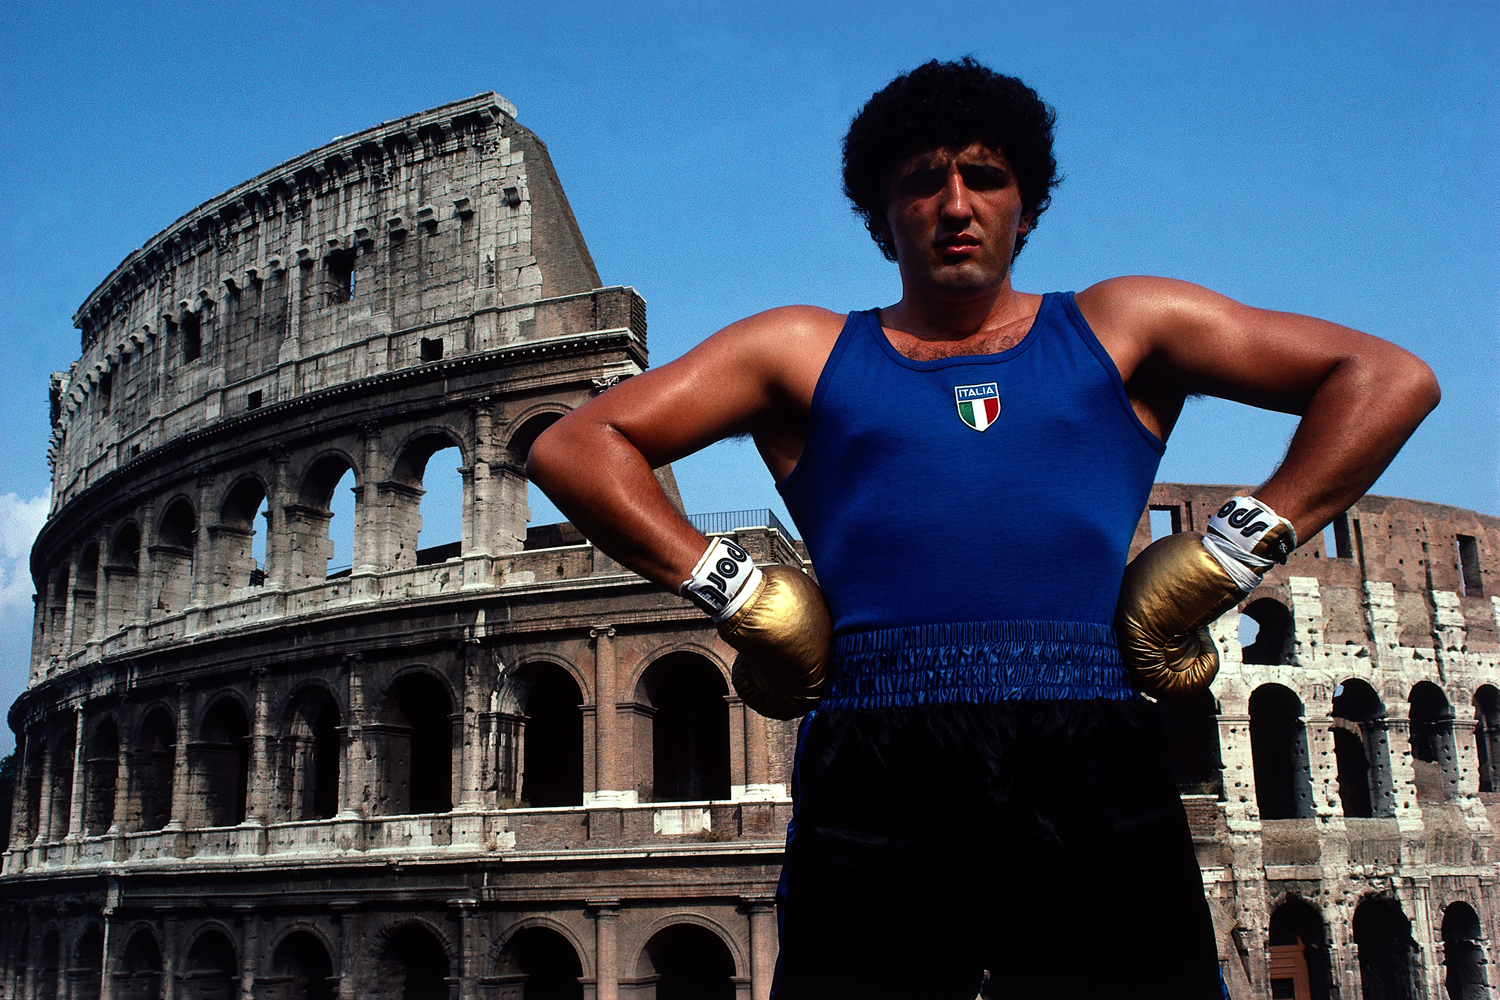 Heavyweight boxer Francesco Damiani in front of the Colosseum in Rome.